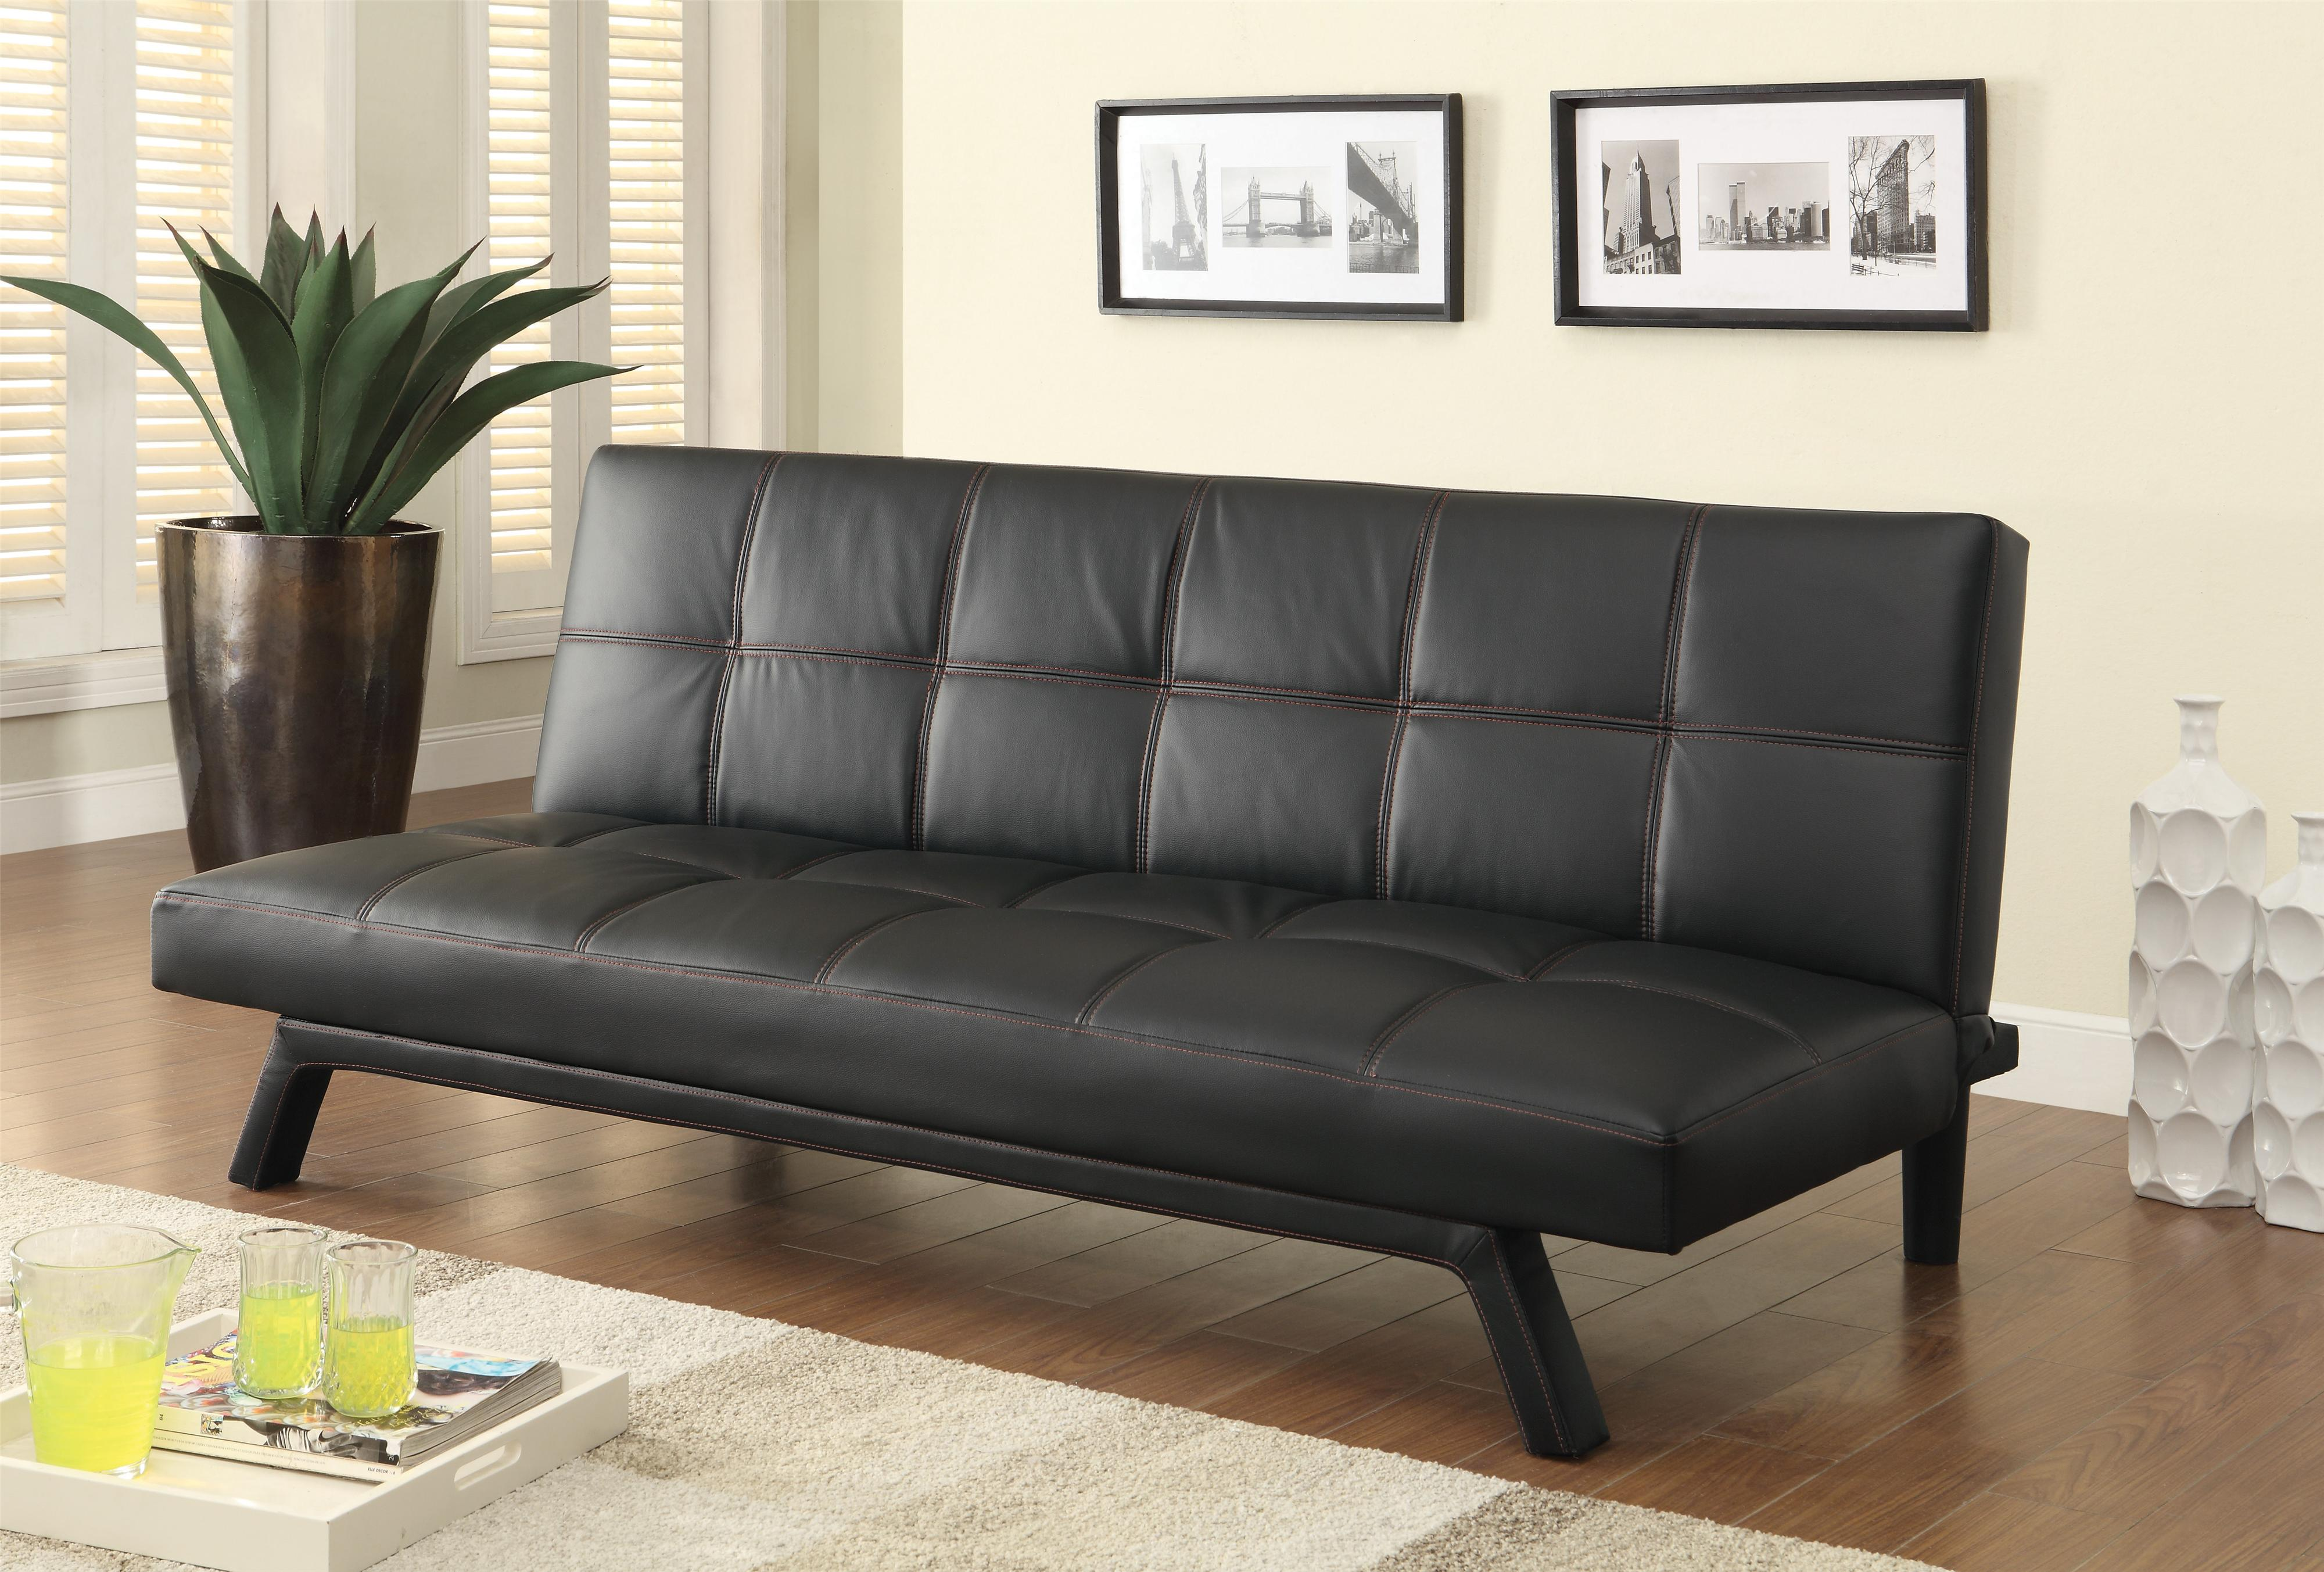 Sofa beds and futons contemporary sofa bed in black for Sofa bed reviews 2014